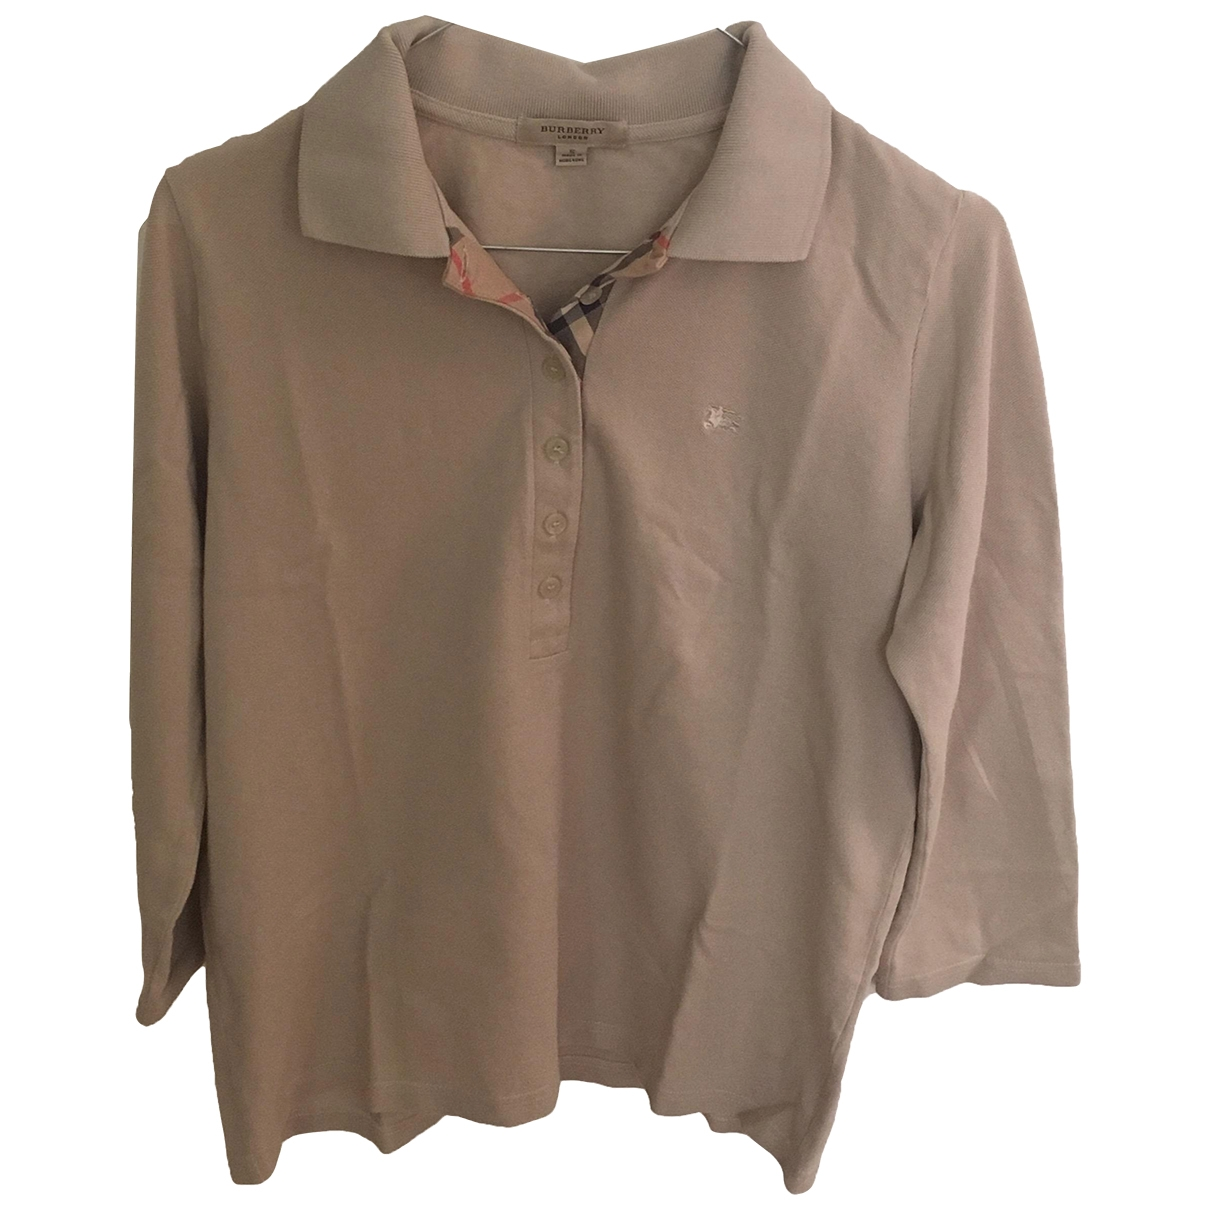 Burberry \N Khaki Cotton  top for Women S International